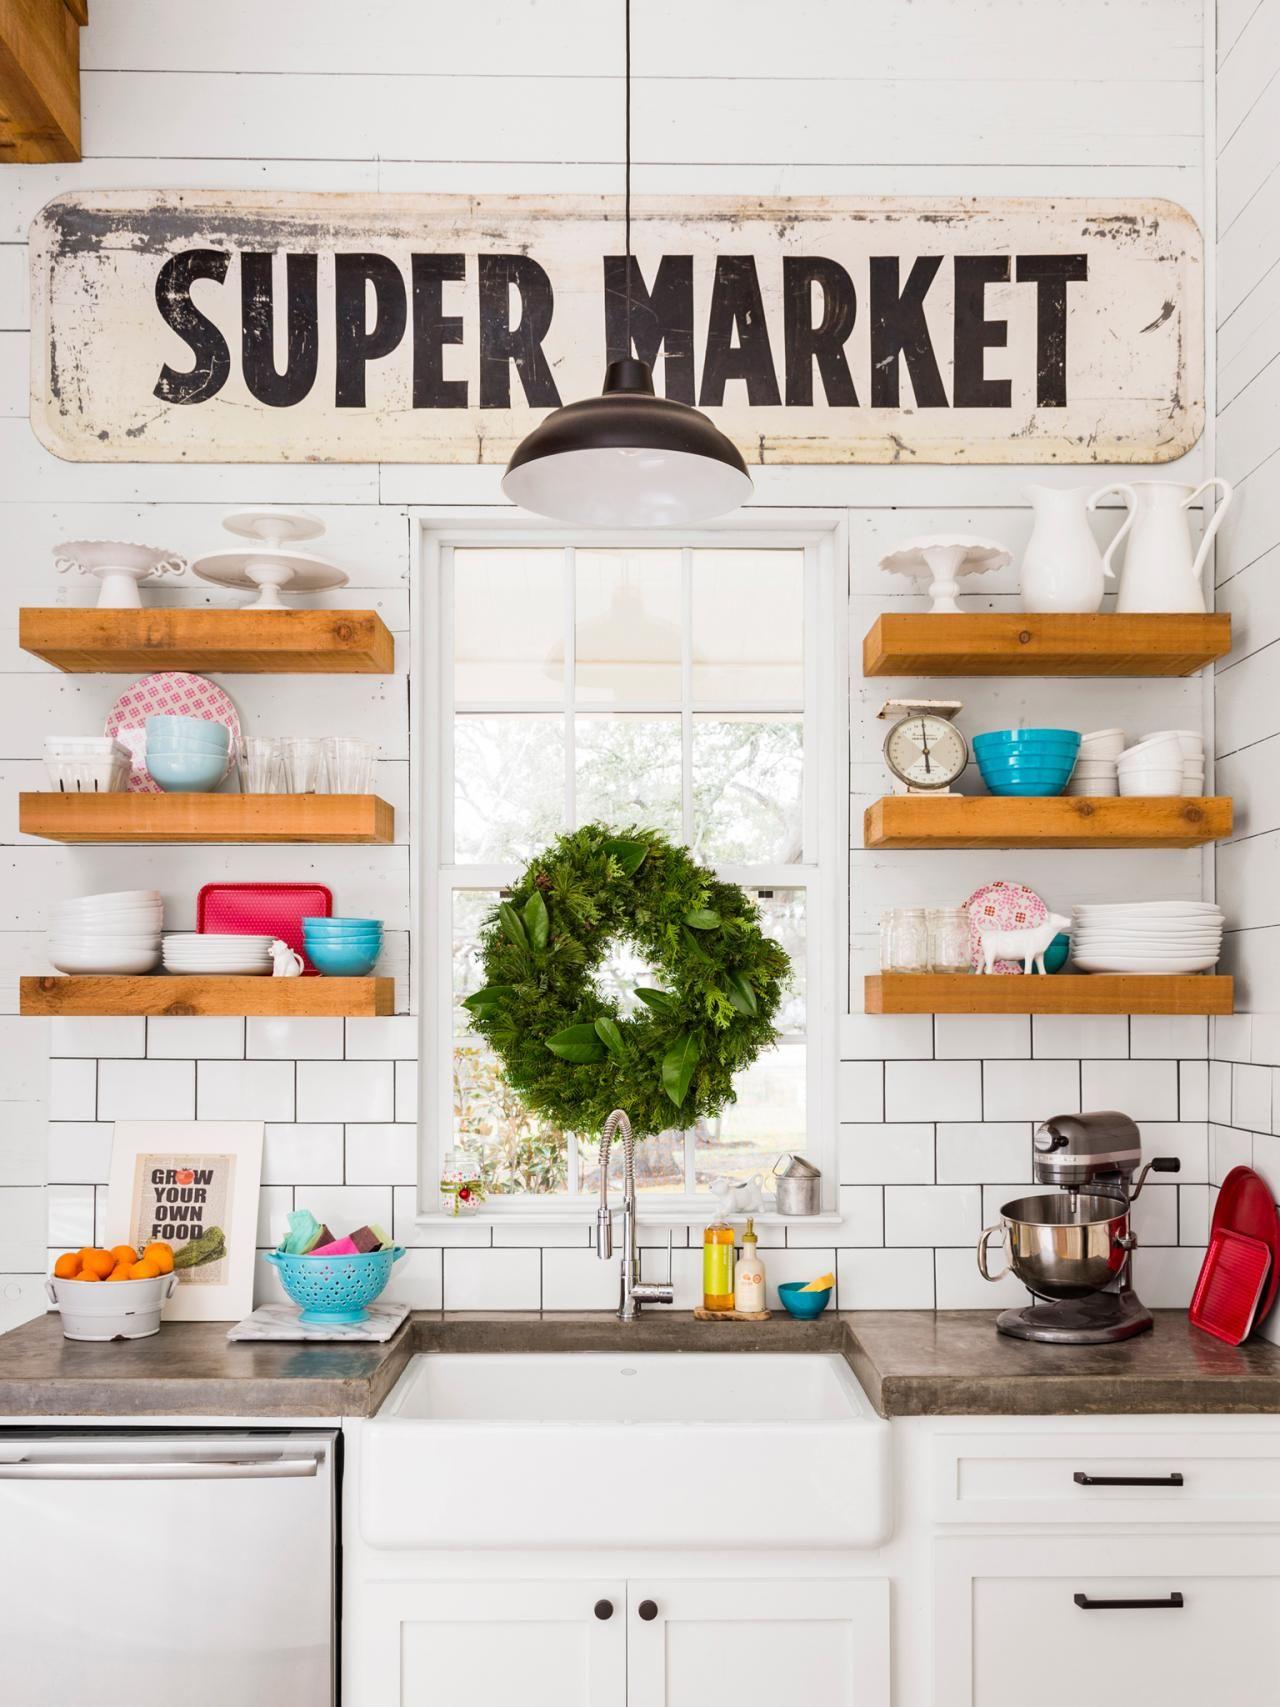 Fixer upper farm kitchens - 17 Best Images About Chip And Joanna Gaines Magnolia Home On Pinterest House Tours Fixer Upper Hosts And Concrete Counter